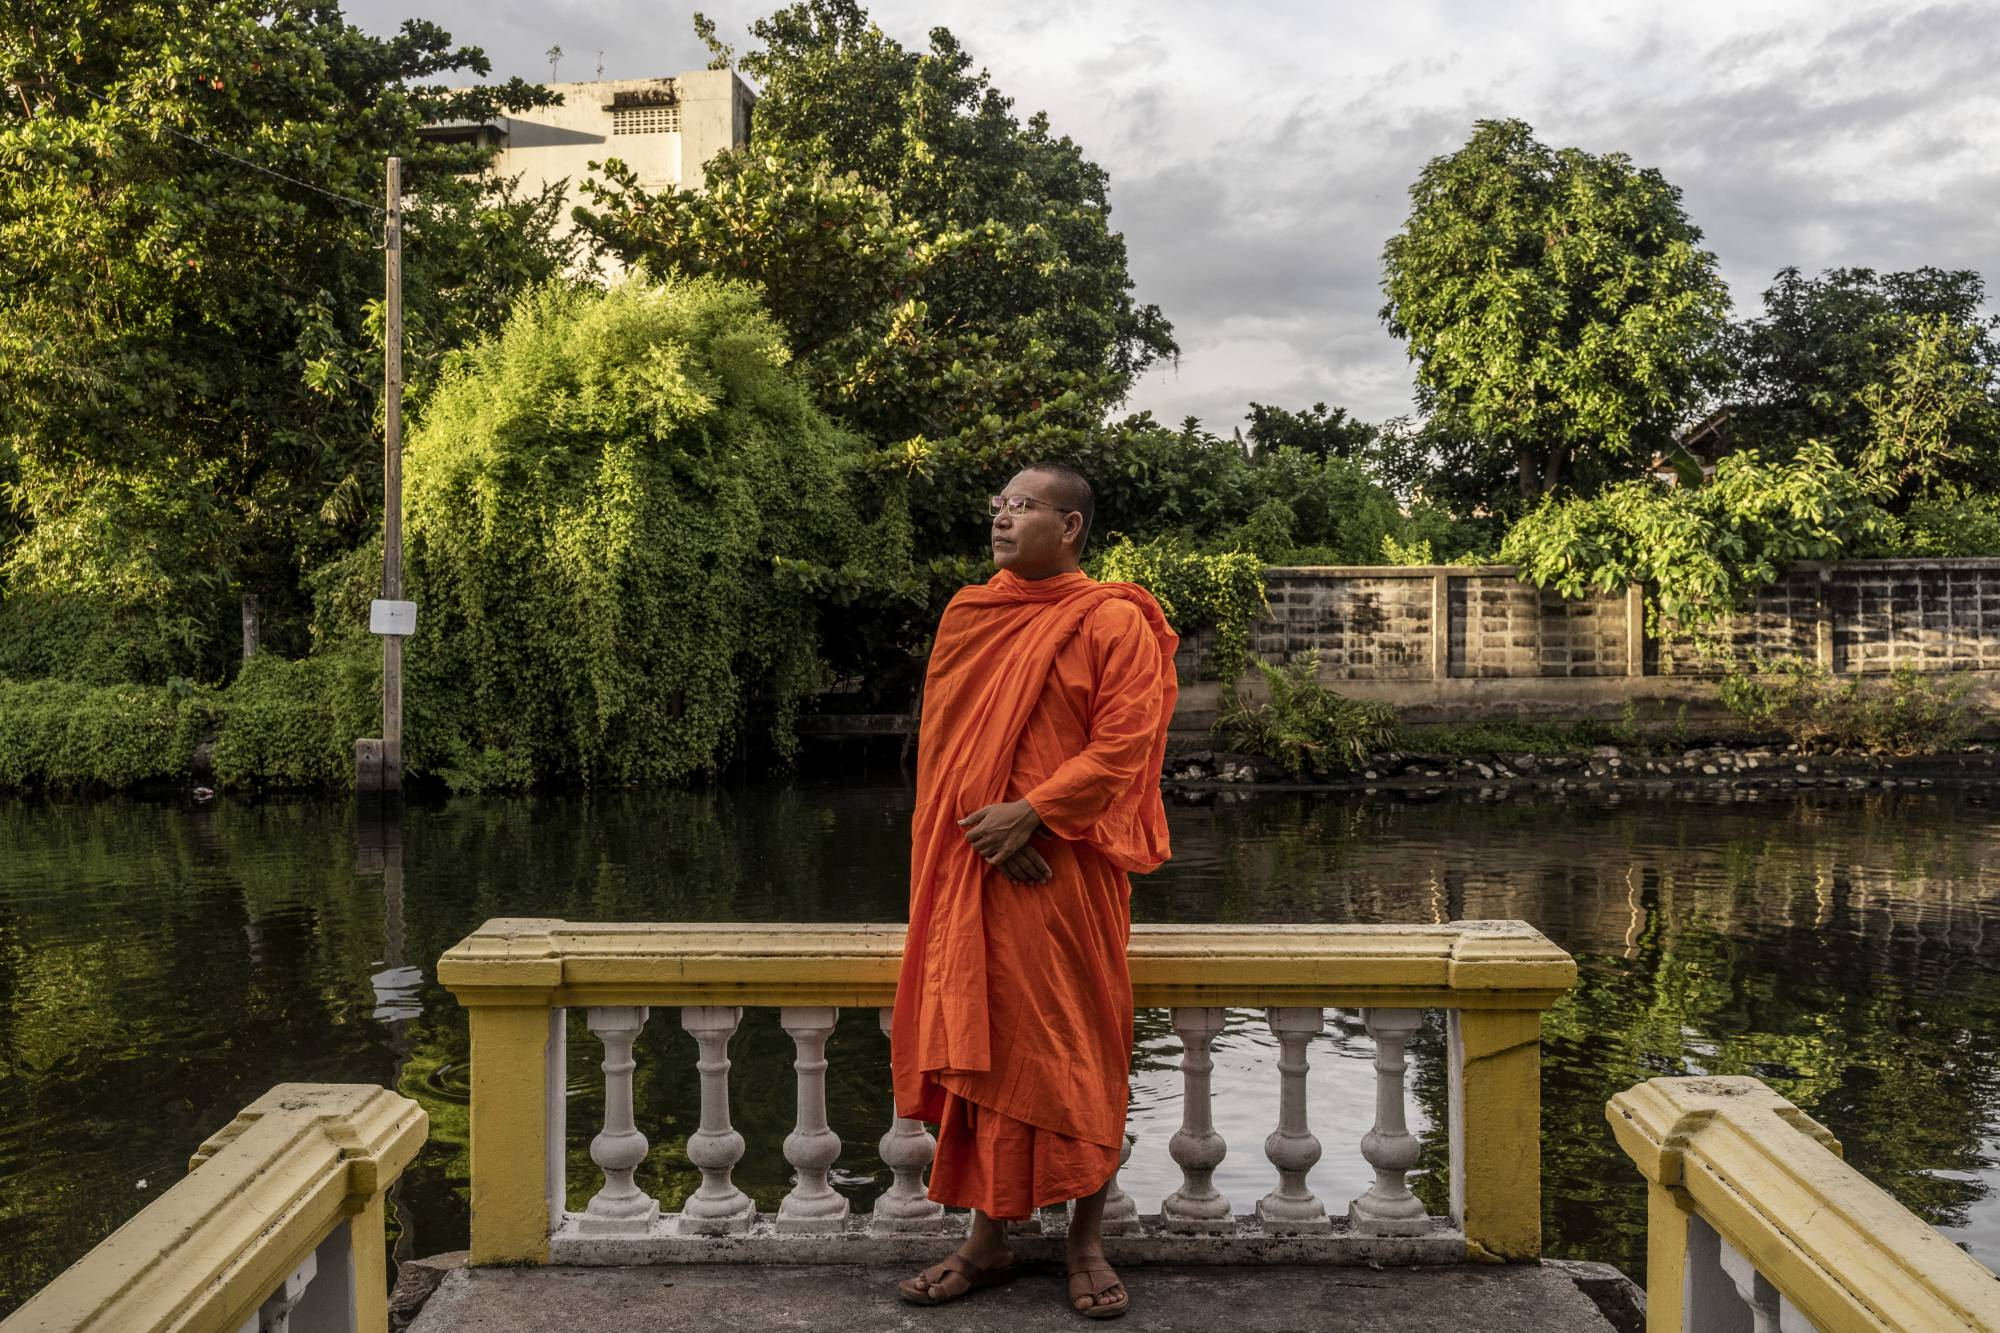 Luon Sovath, a Cambodian monk and rights activist who fled Cambodia, poses in Bangkok in July 2020.   ADAM DEAN / THE NEW YORK TIMES